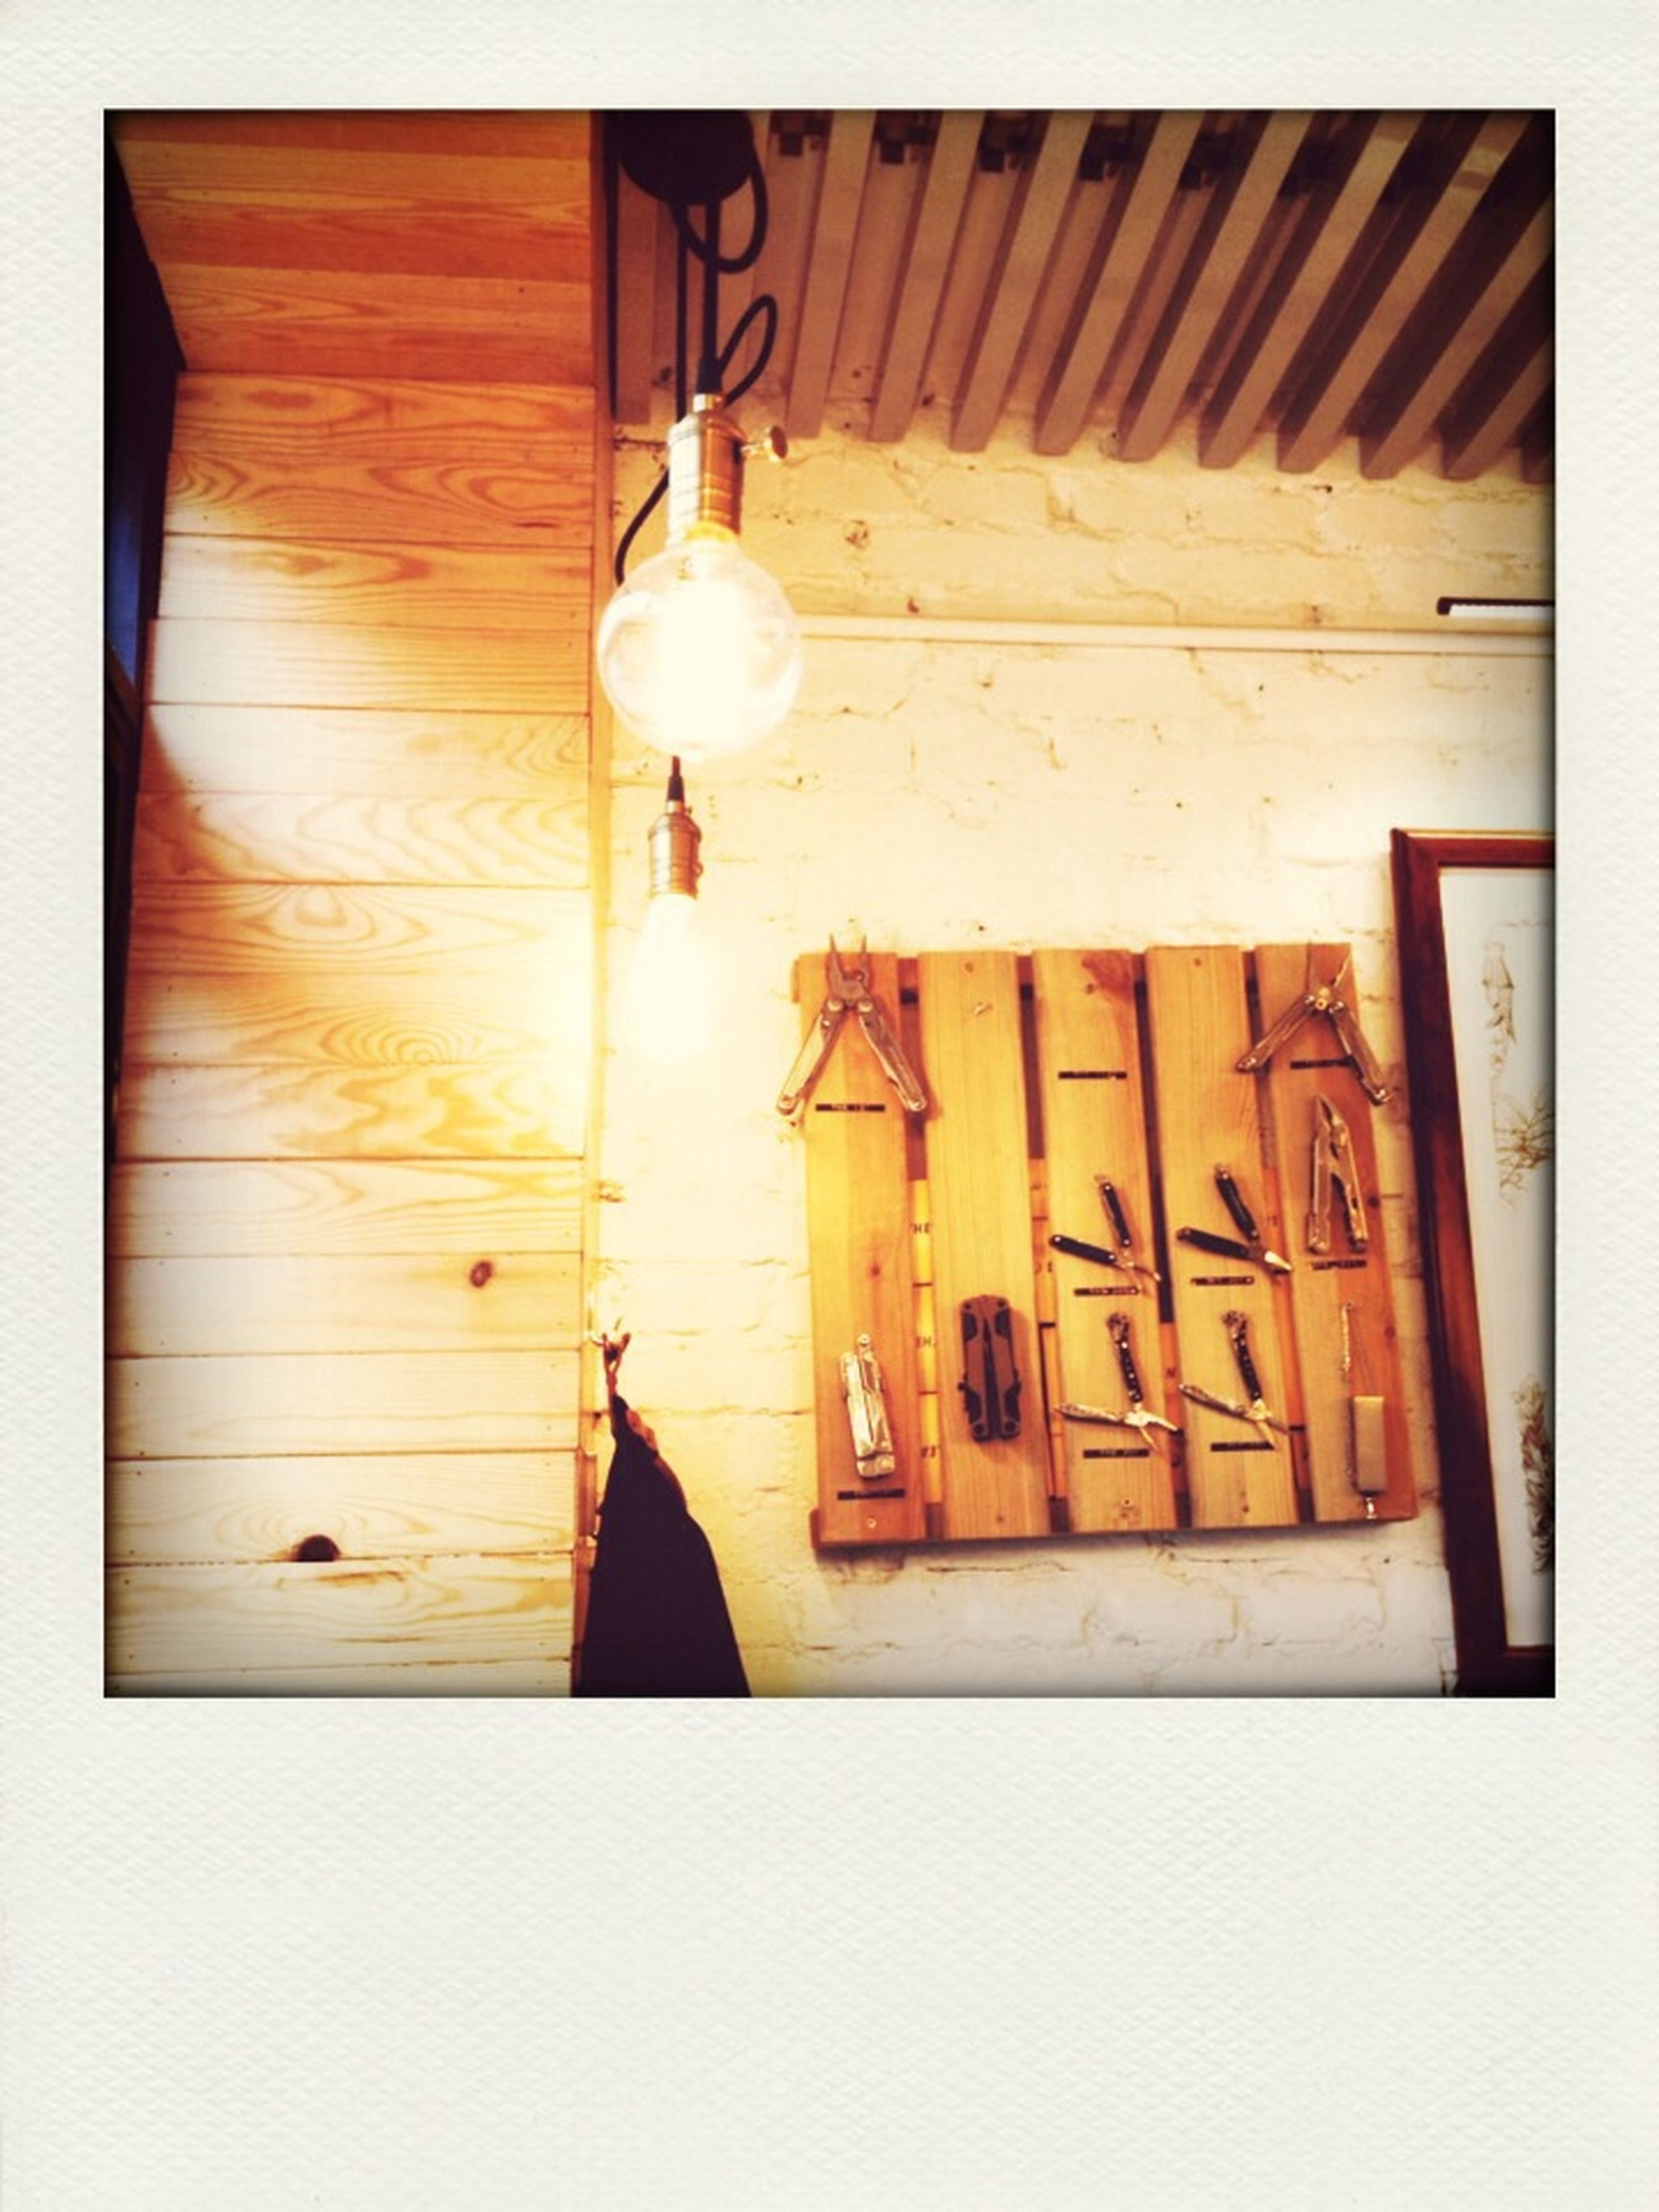 transfer print, indoors, auto post production filter, wood - material, wooden, table, still life, wood, close-up, no people, hanging, wall, home interior, shelf, wall - building feature, in a row, door, shadow, old, old-fashioned